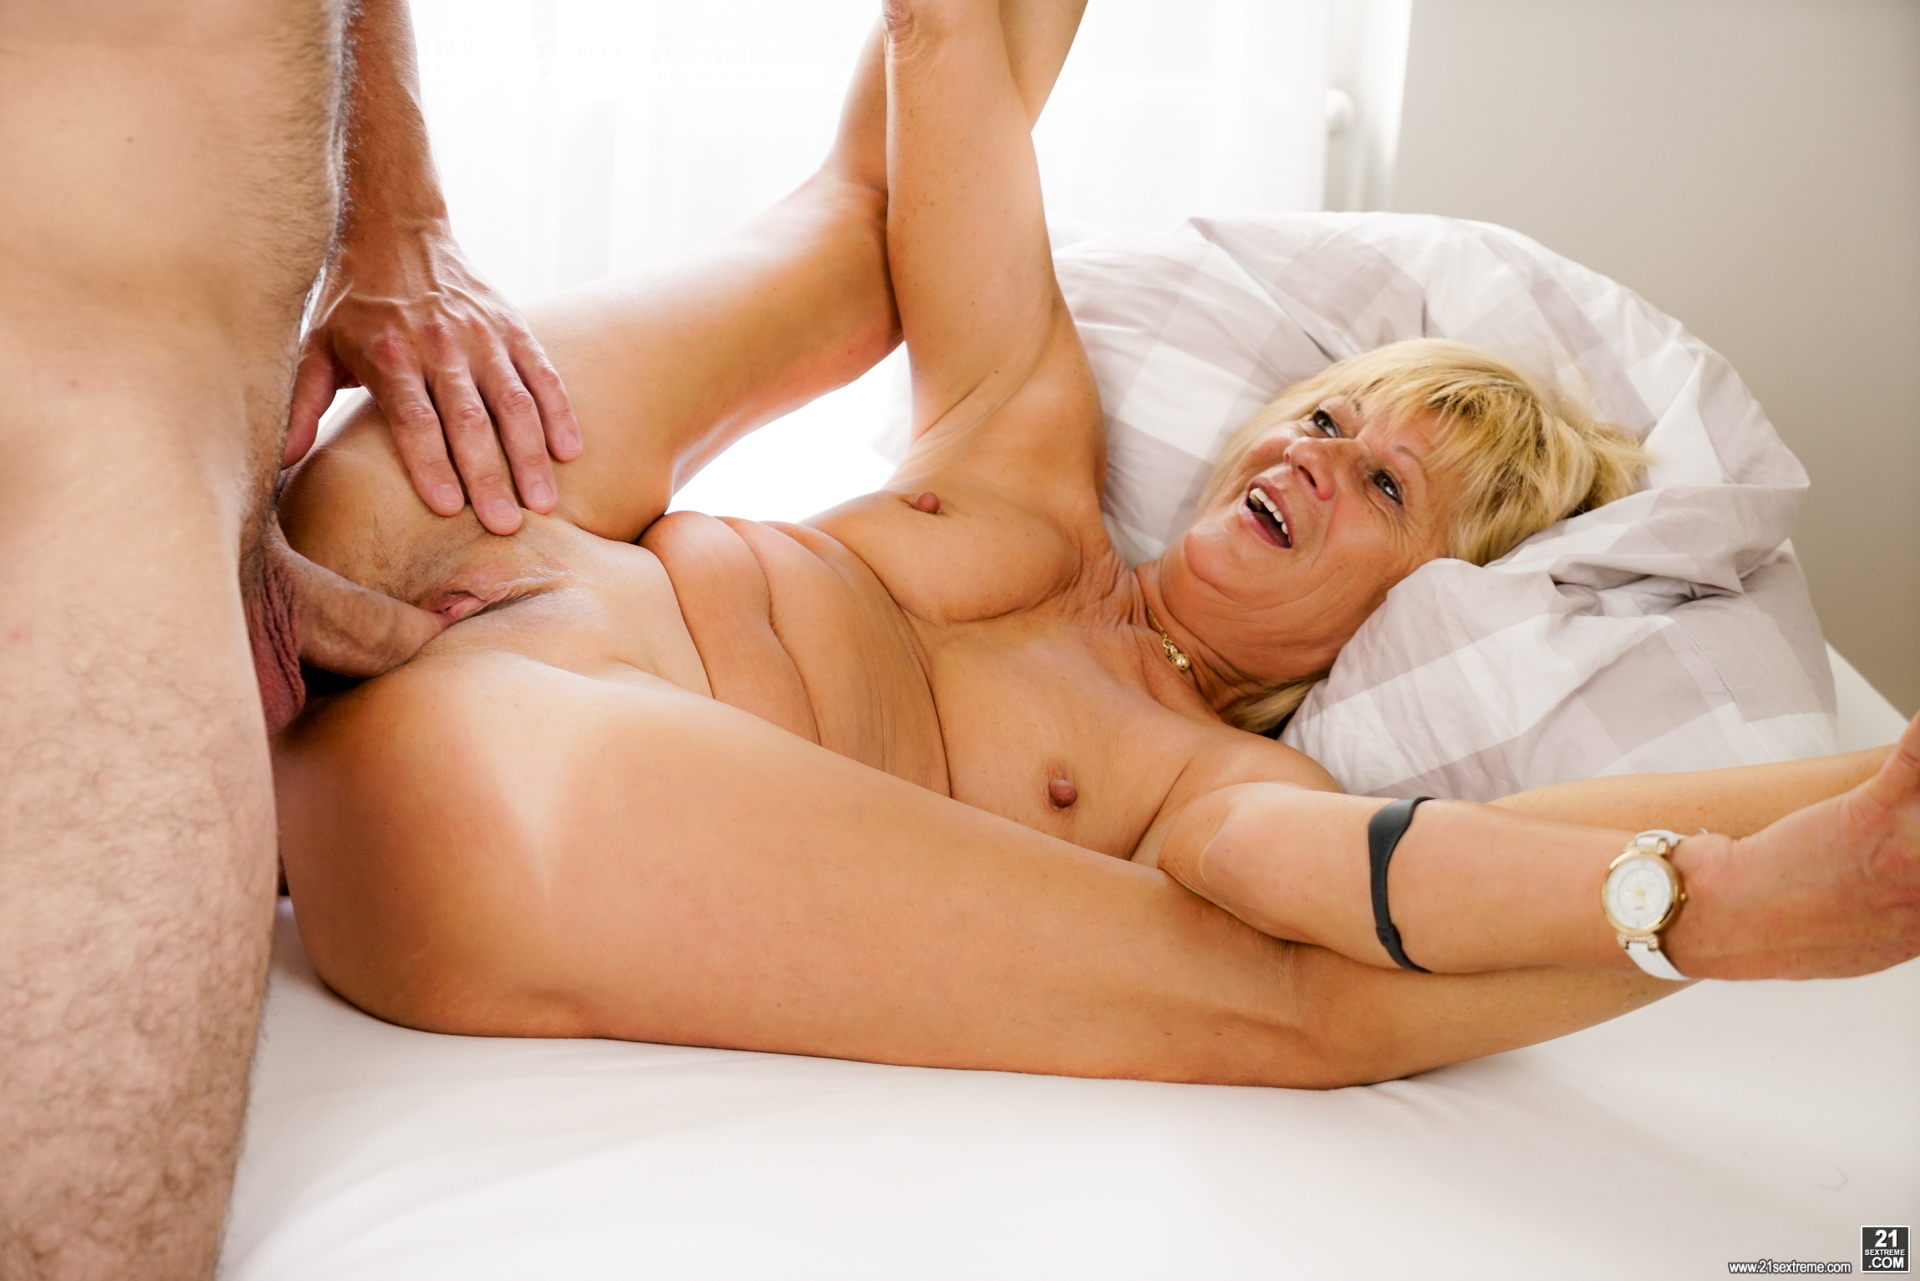 her old mature cunt tastes so delicious #1